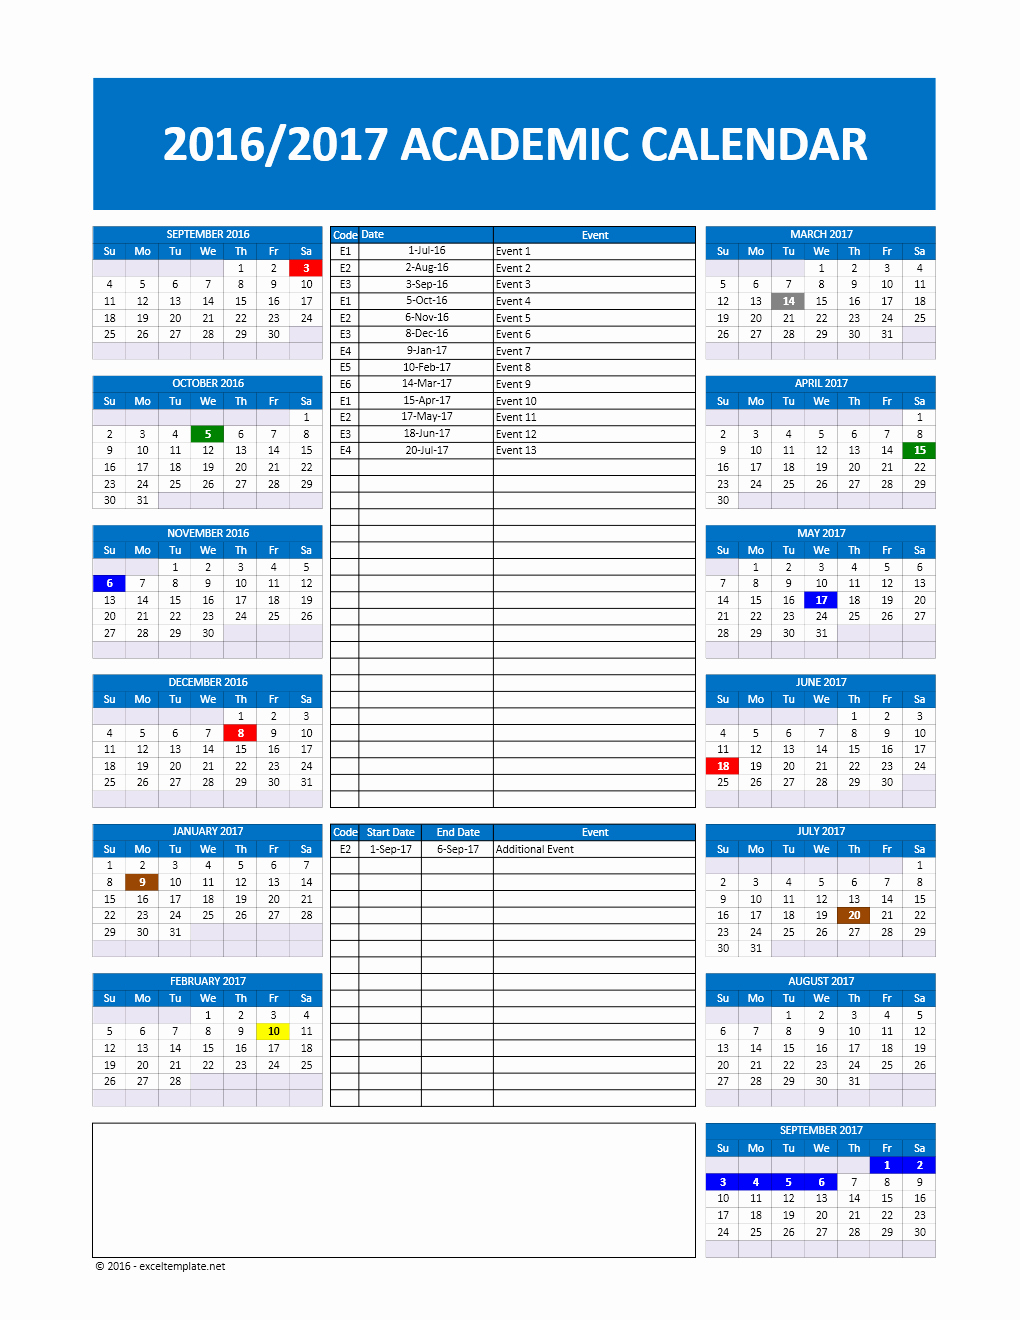 Excel Calendar Schedule Template Unique 2017 2018 and 2016 2017 School Calendar Templates